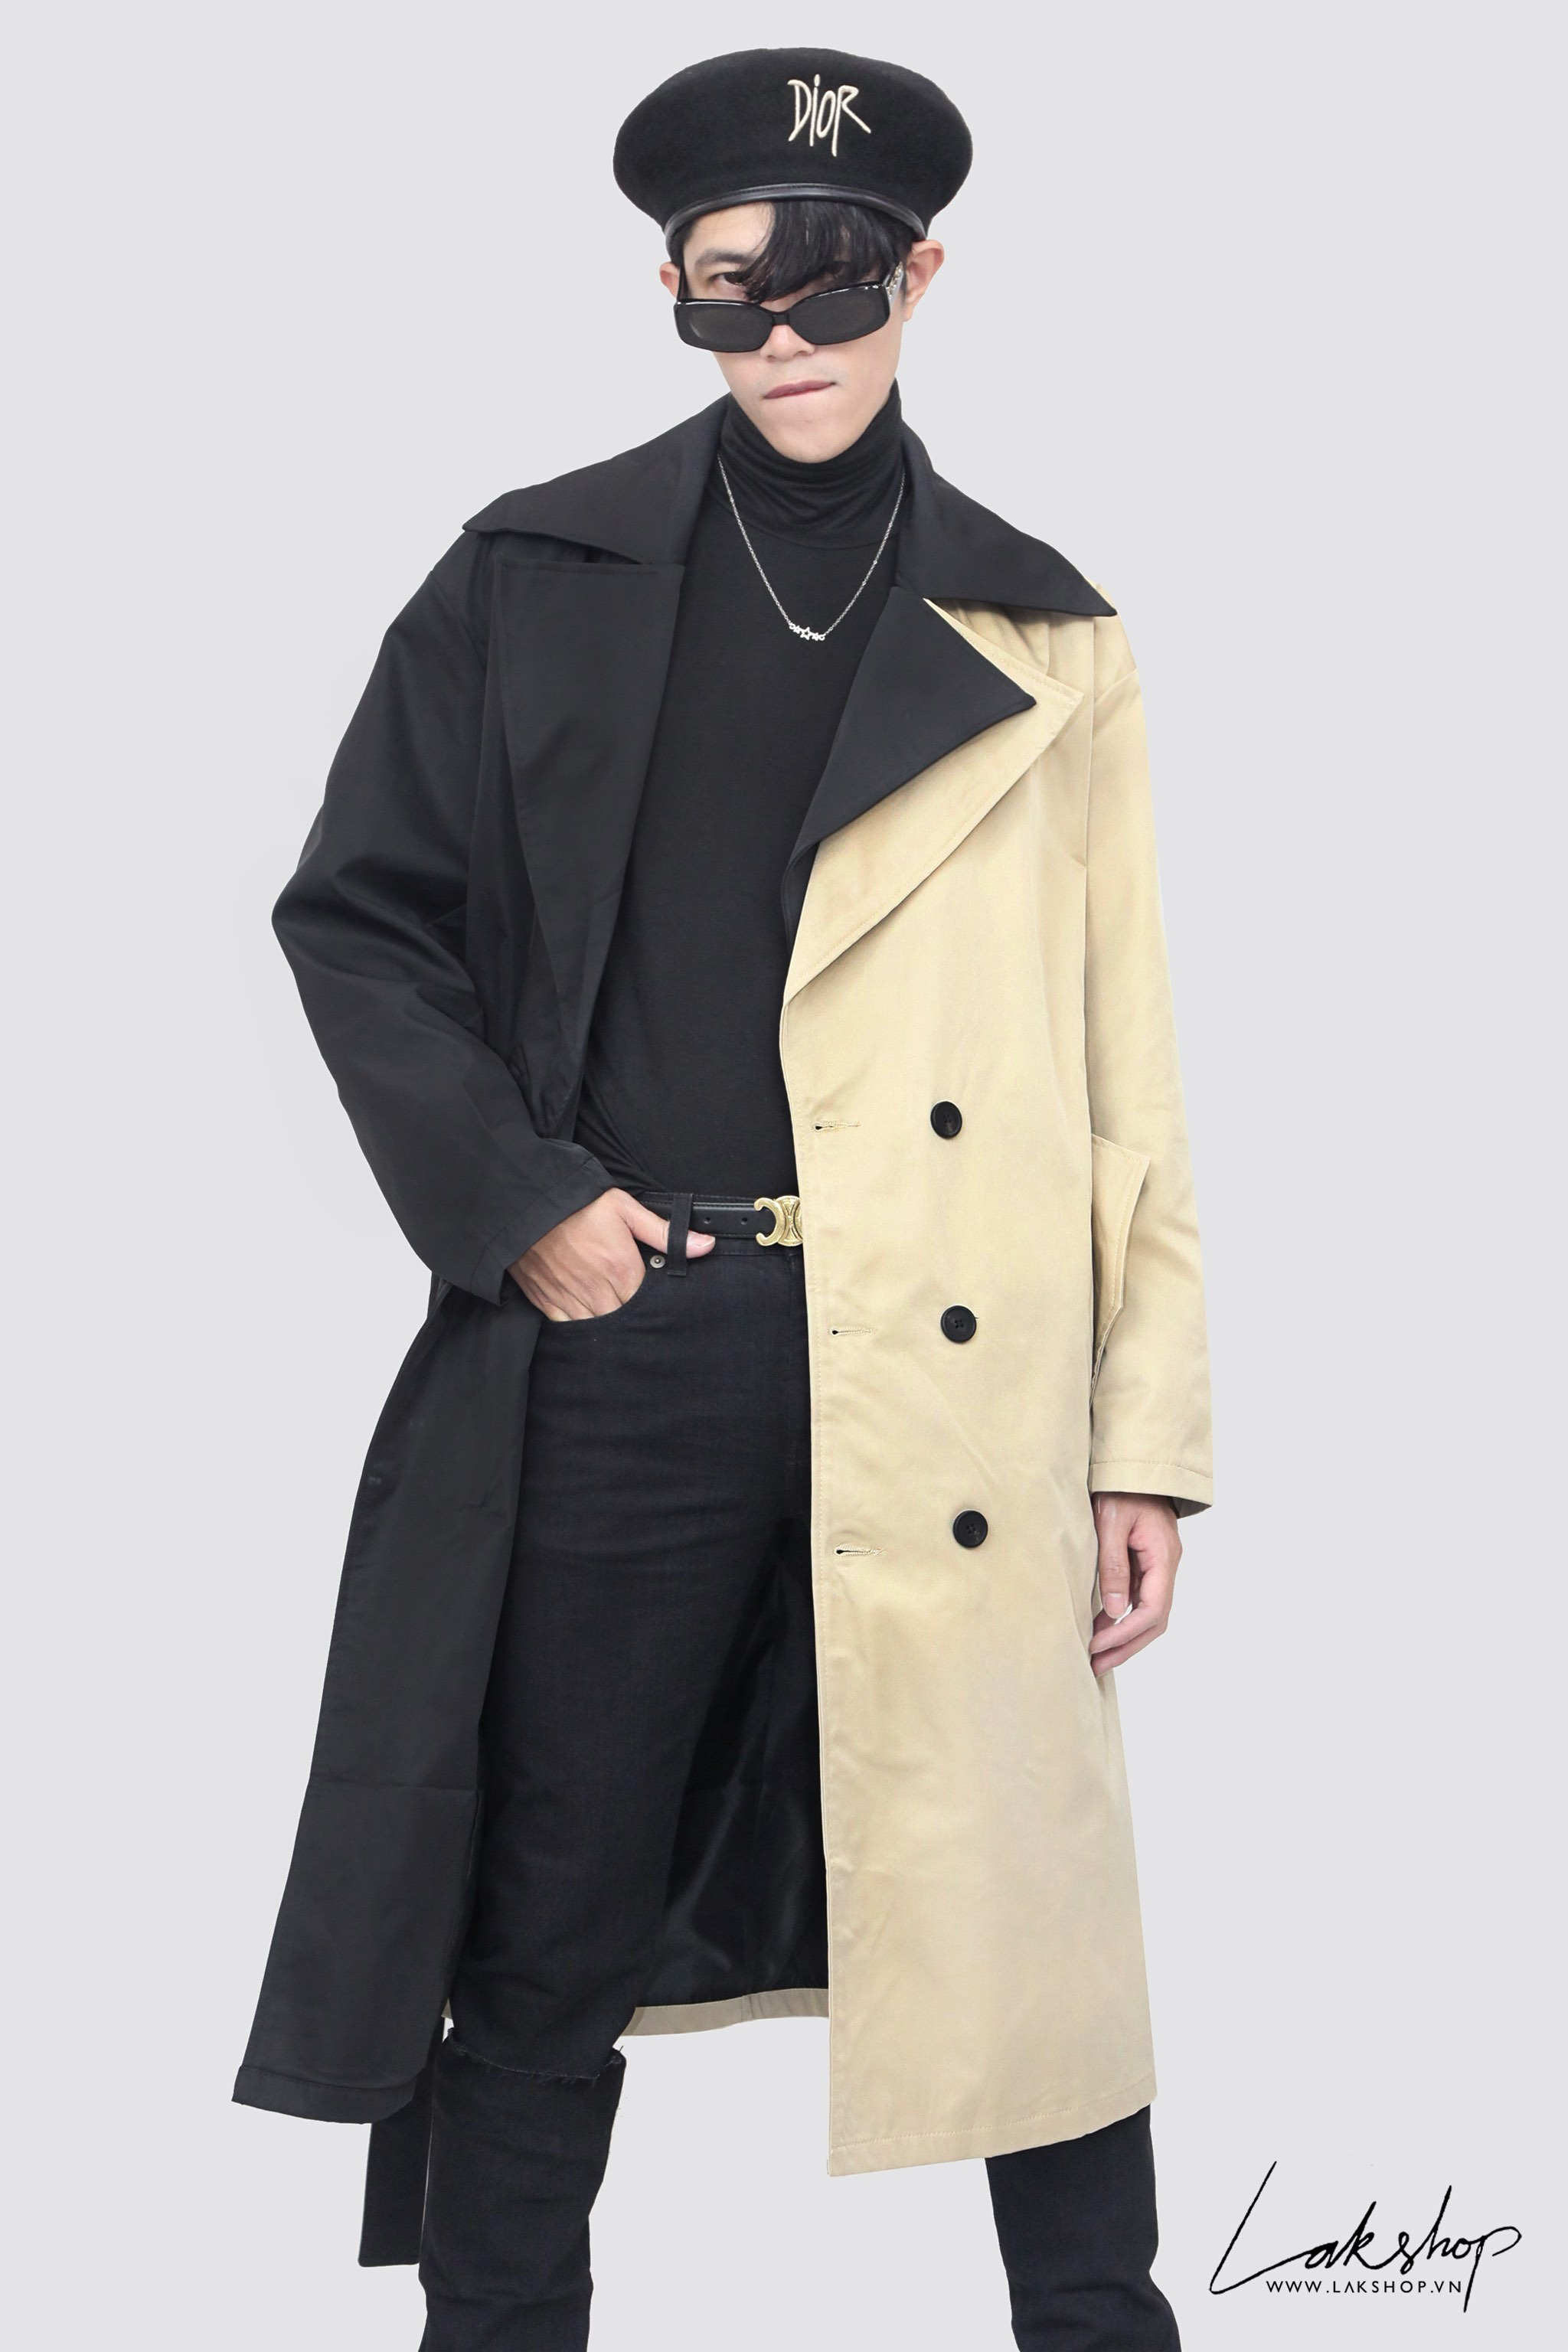 Two-Tone Black Tan Double-Breasted Trench Coat